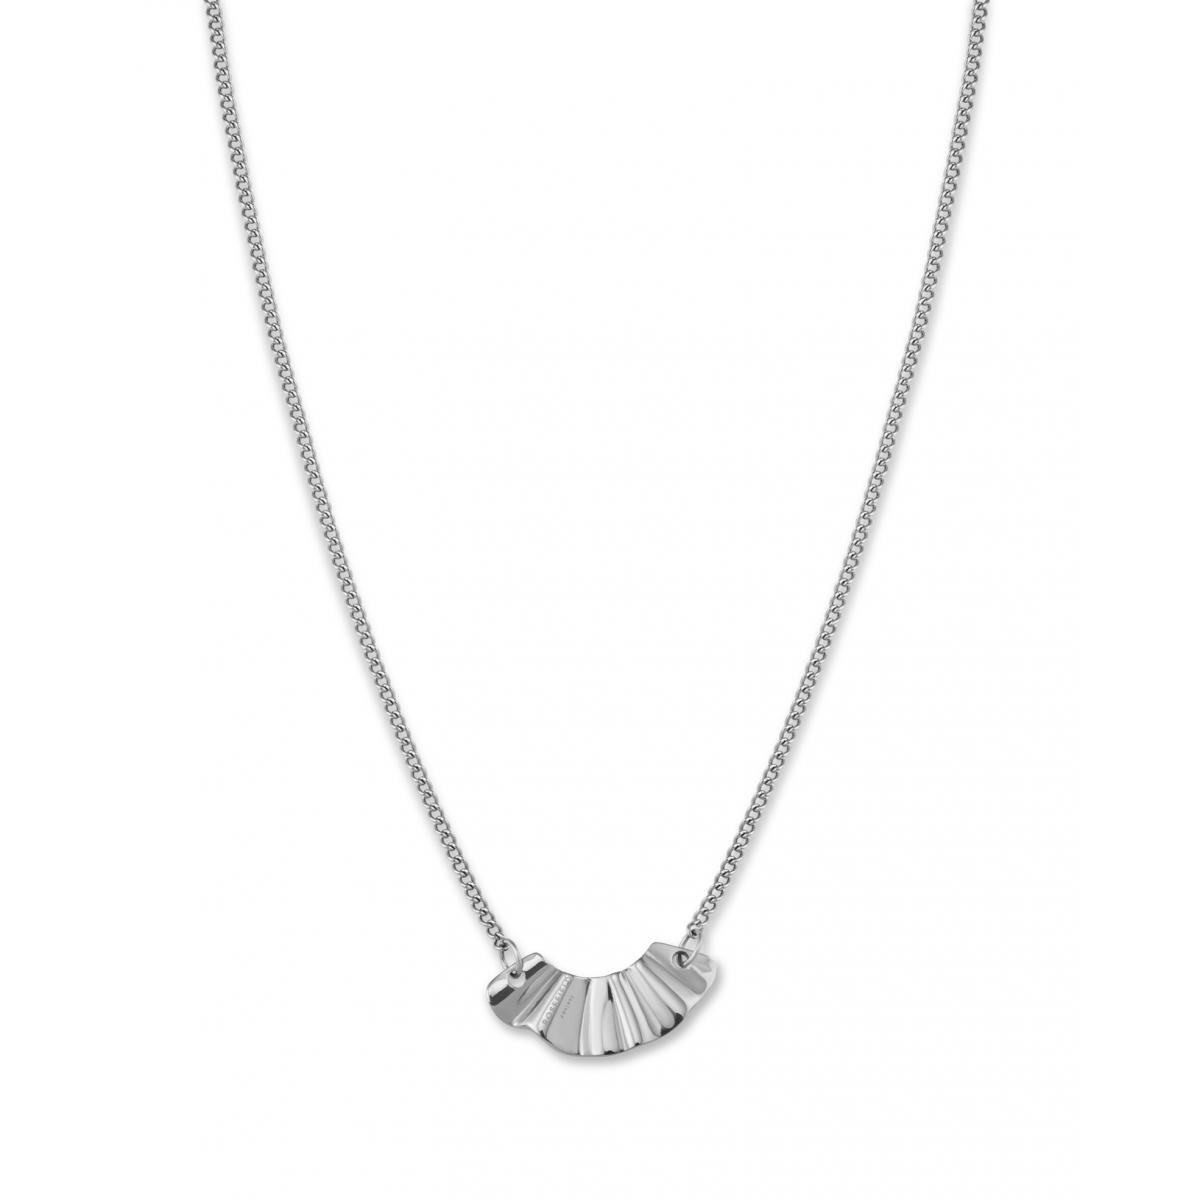 Collier et pendentif Rosefield BLWNS-J200 -  Collection THE LOIS Collier vague Acier  Femme